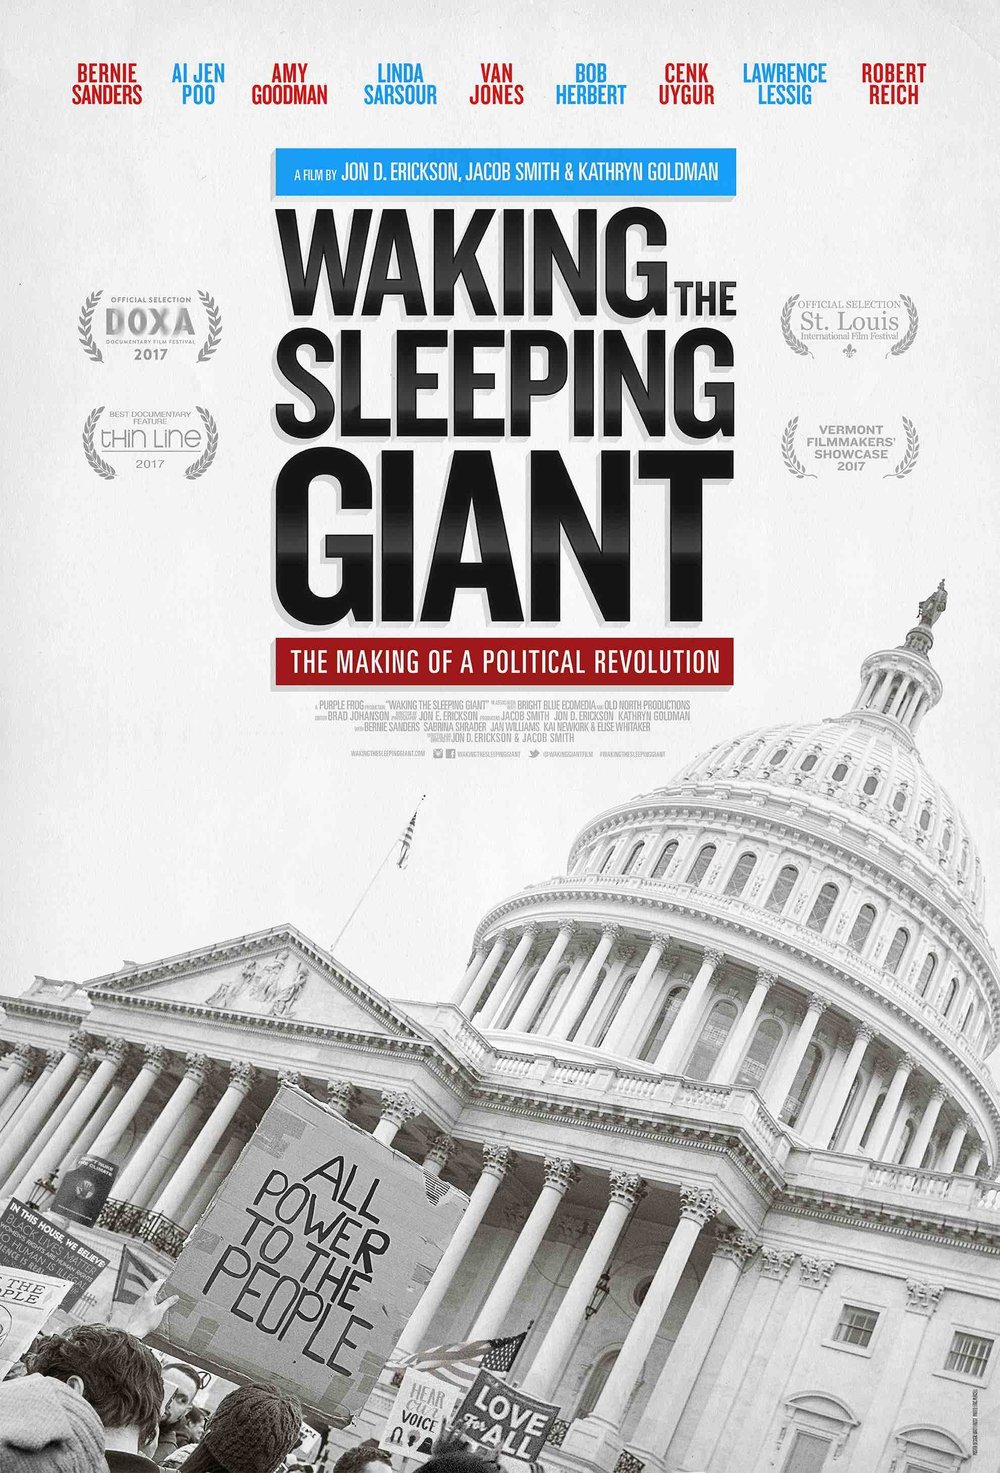 waking_the_sleepinggiant_onesheet.jpg